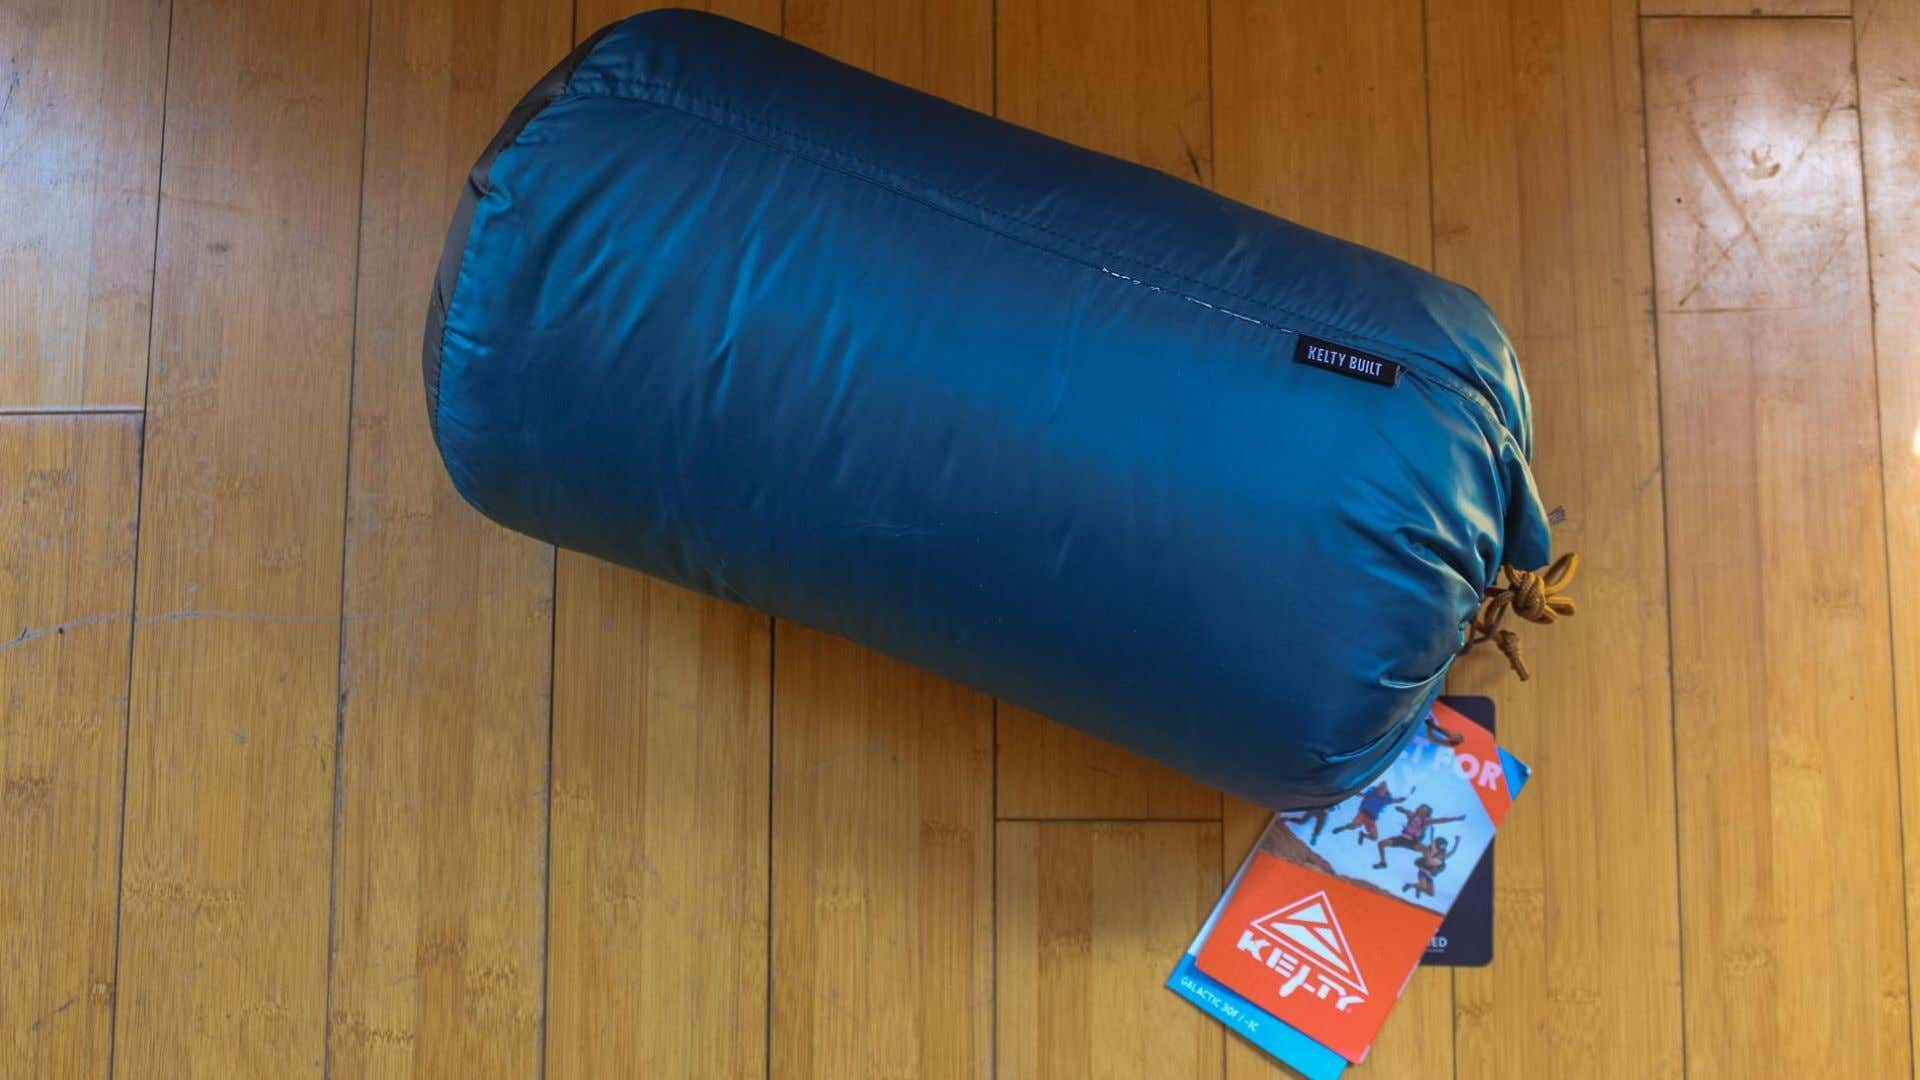 Sleeping bags are an absolute necessity for sleeping in variable climates.